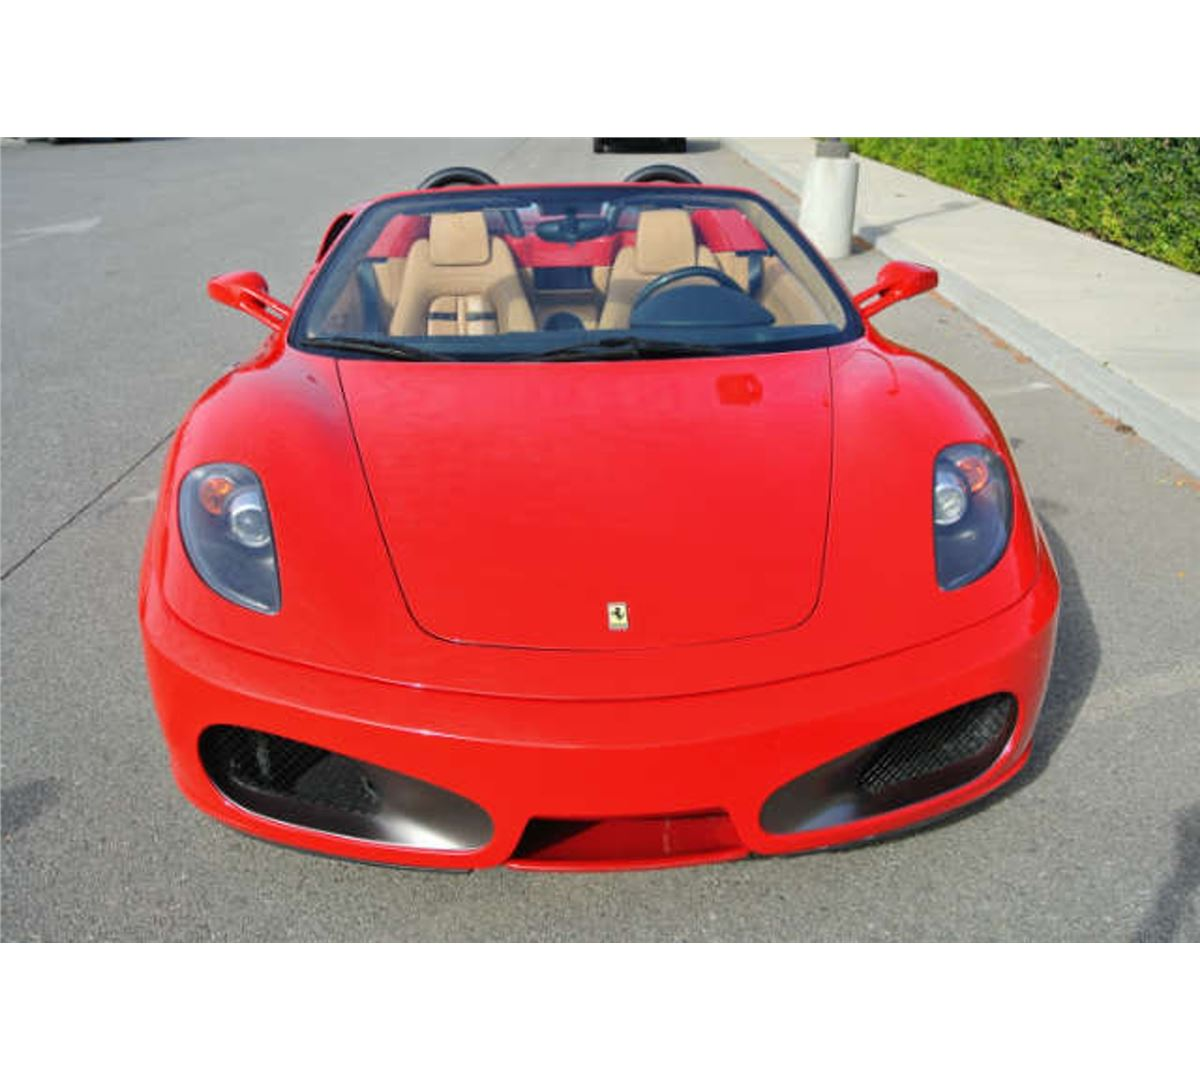 Ferrari Convertible: 2006 Red Ferrari 430 Convertible